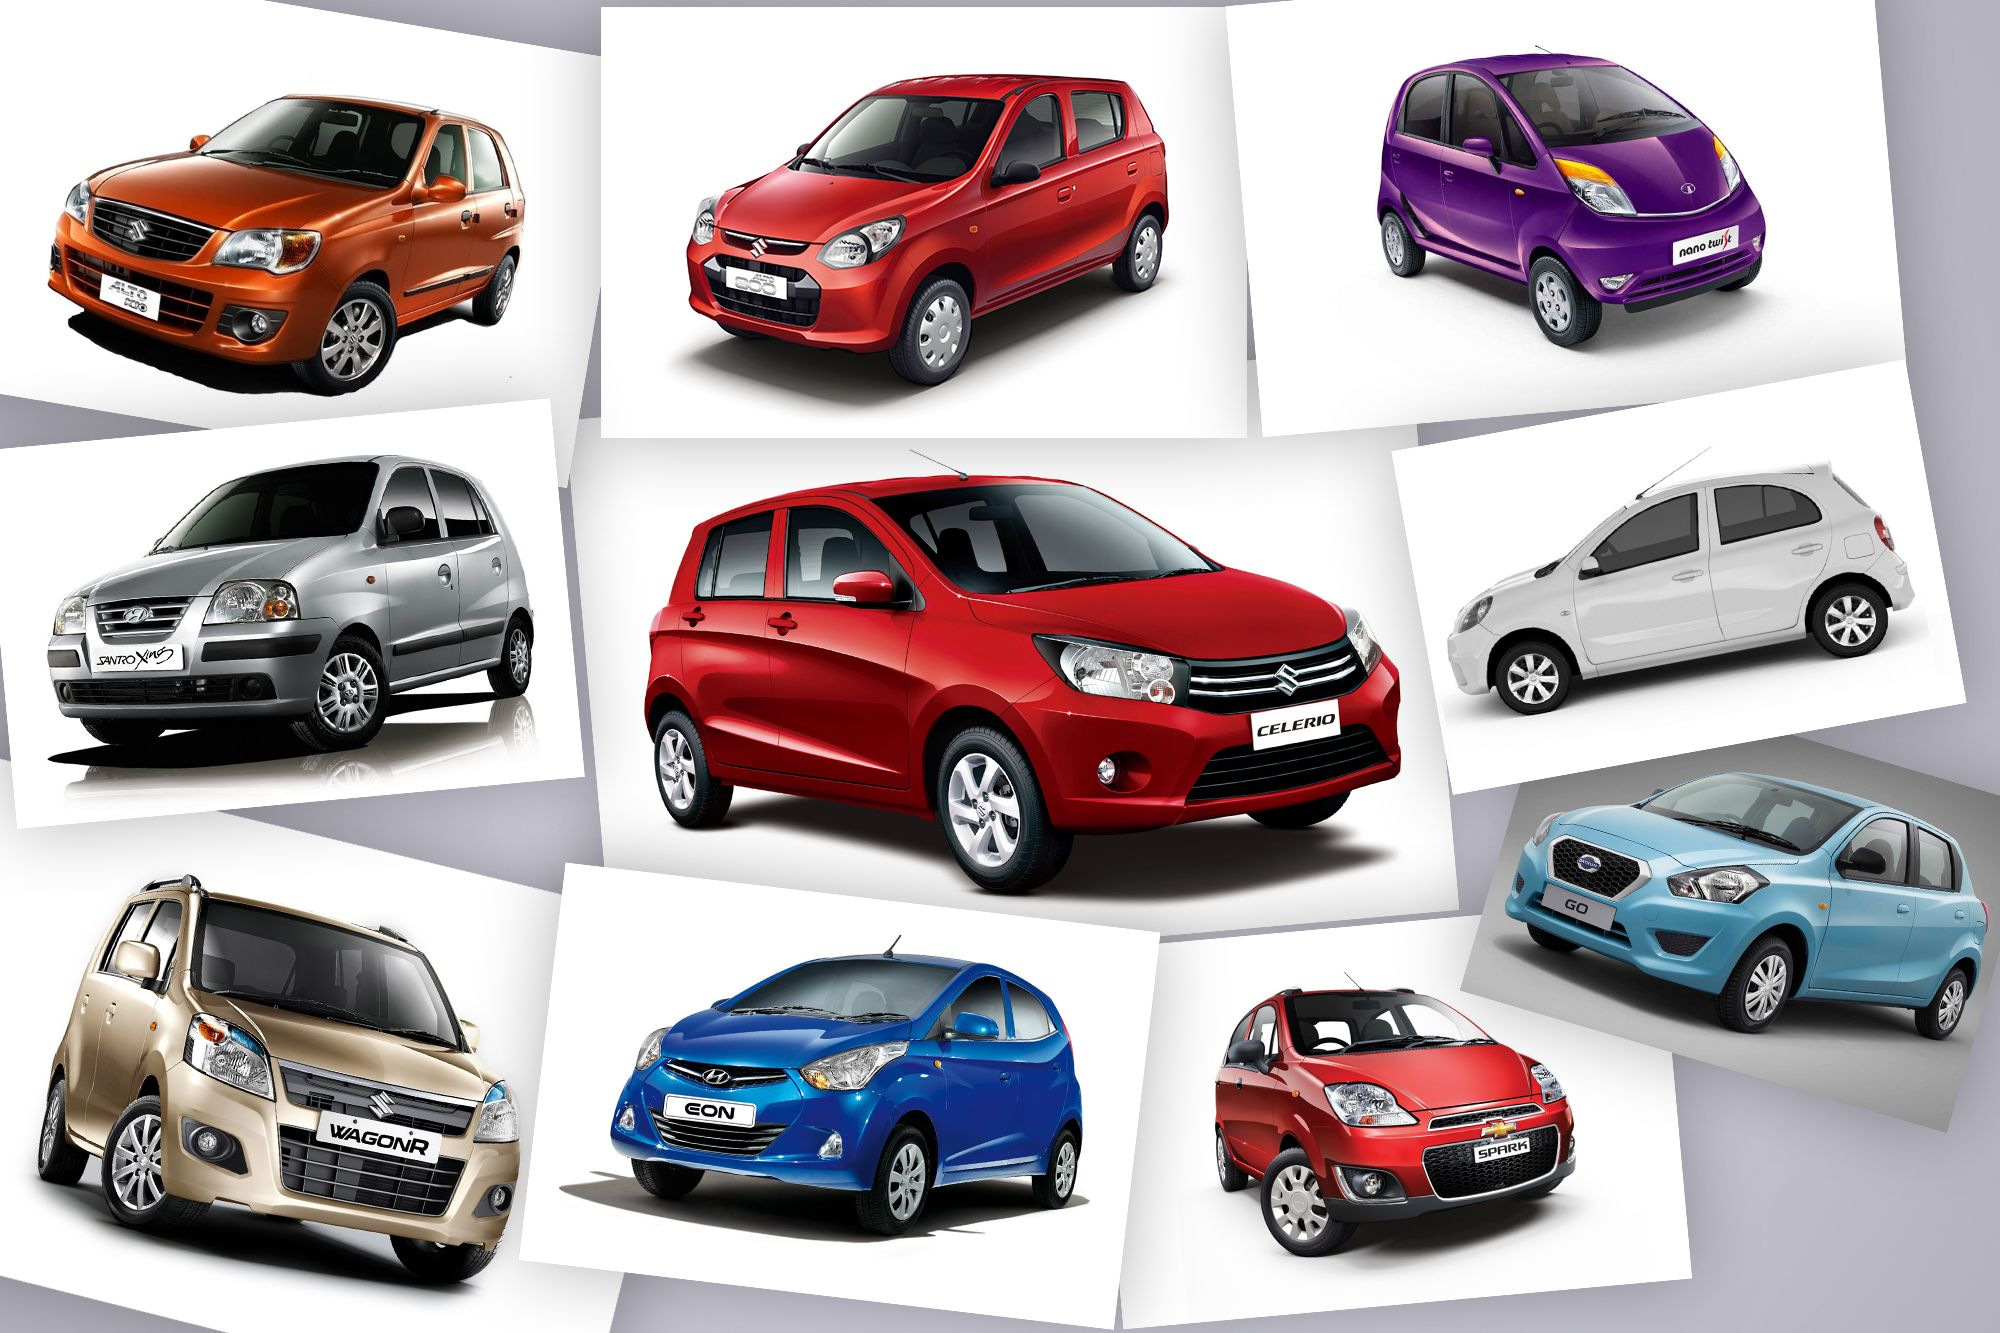 Authorised Car Dealership and Showrooms in INDIA | Showroom, Top ...